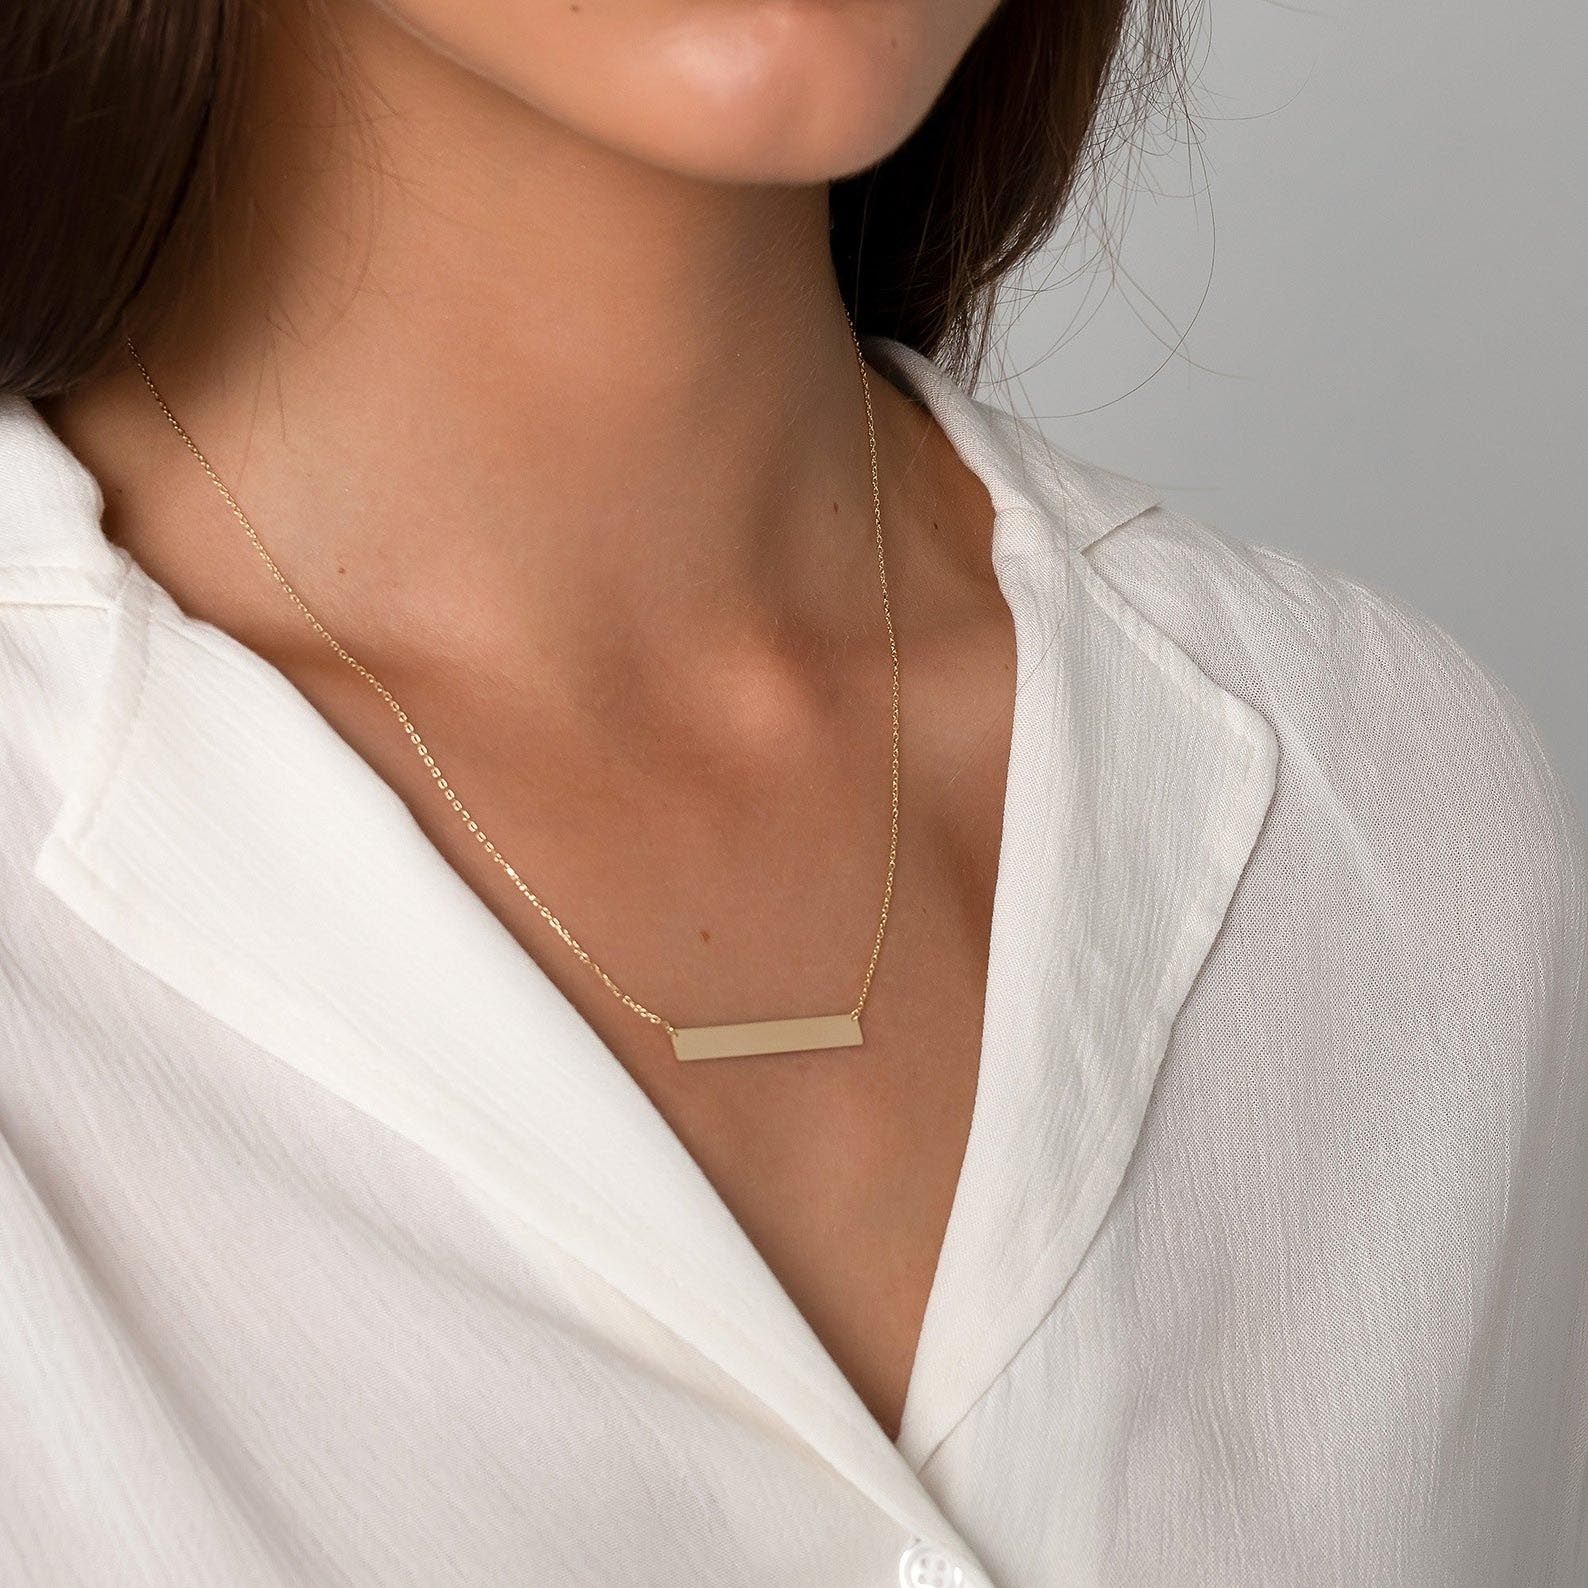 Gift Idea - 14K Solid Gold Bar Necklace